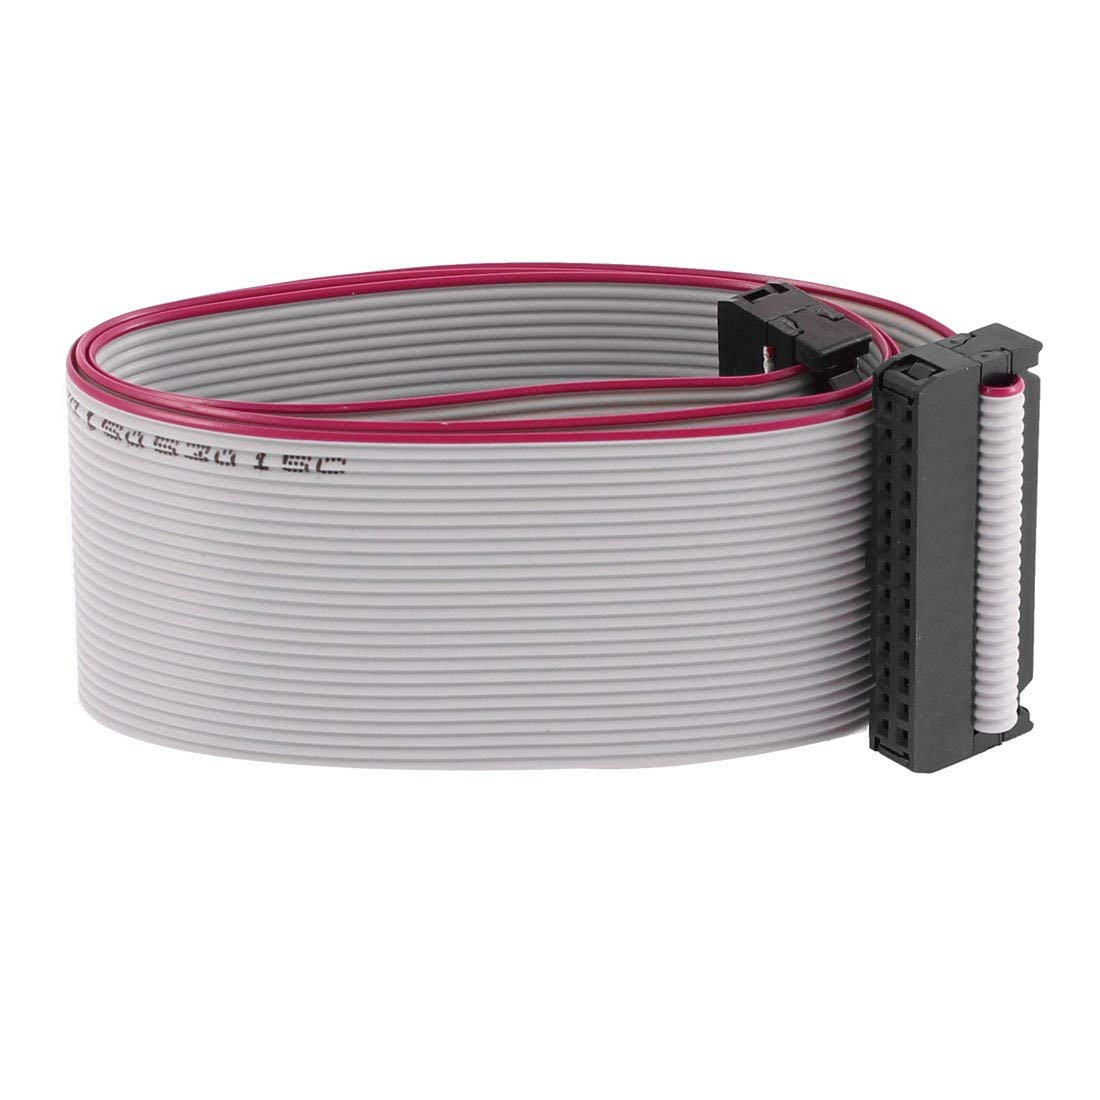 "Uxcell IDC Connector Flat Ribbon Cable, F/F, 26 Pin, 2.54 mm Pitch, 20"" Length"